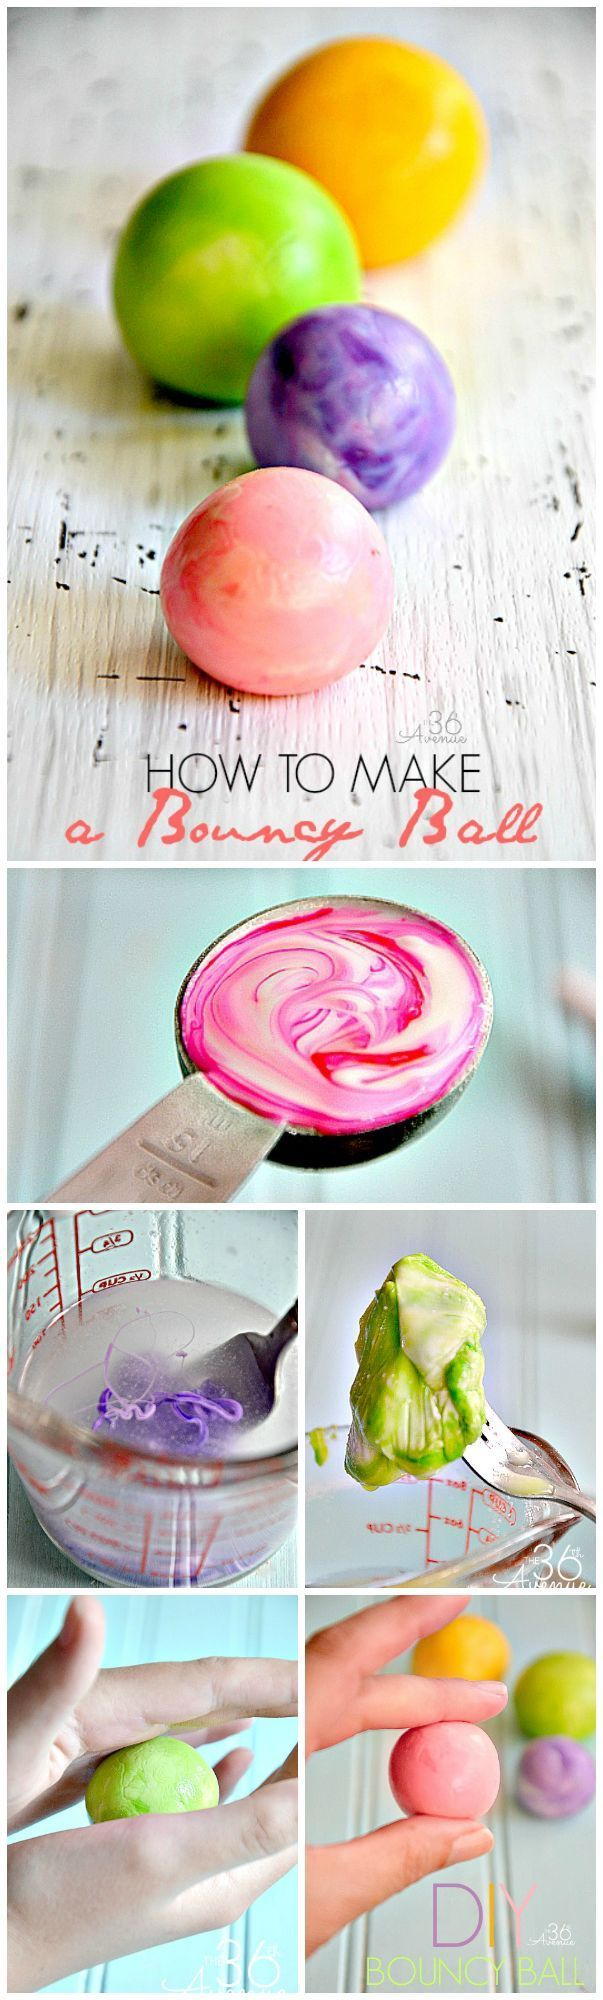 bounce, bounce, bounce - who knew you could make your own bouncy balls!?!